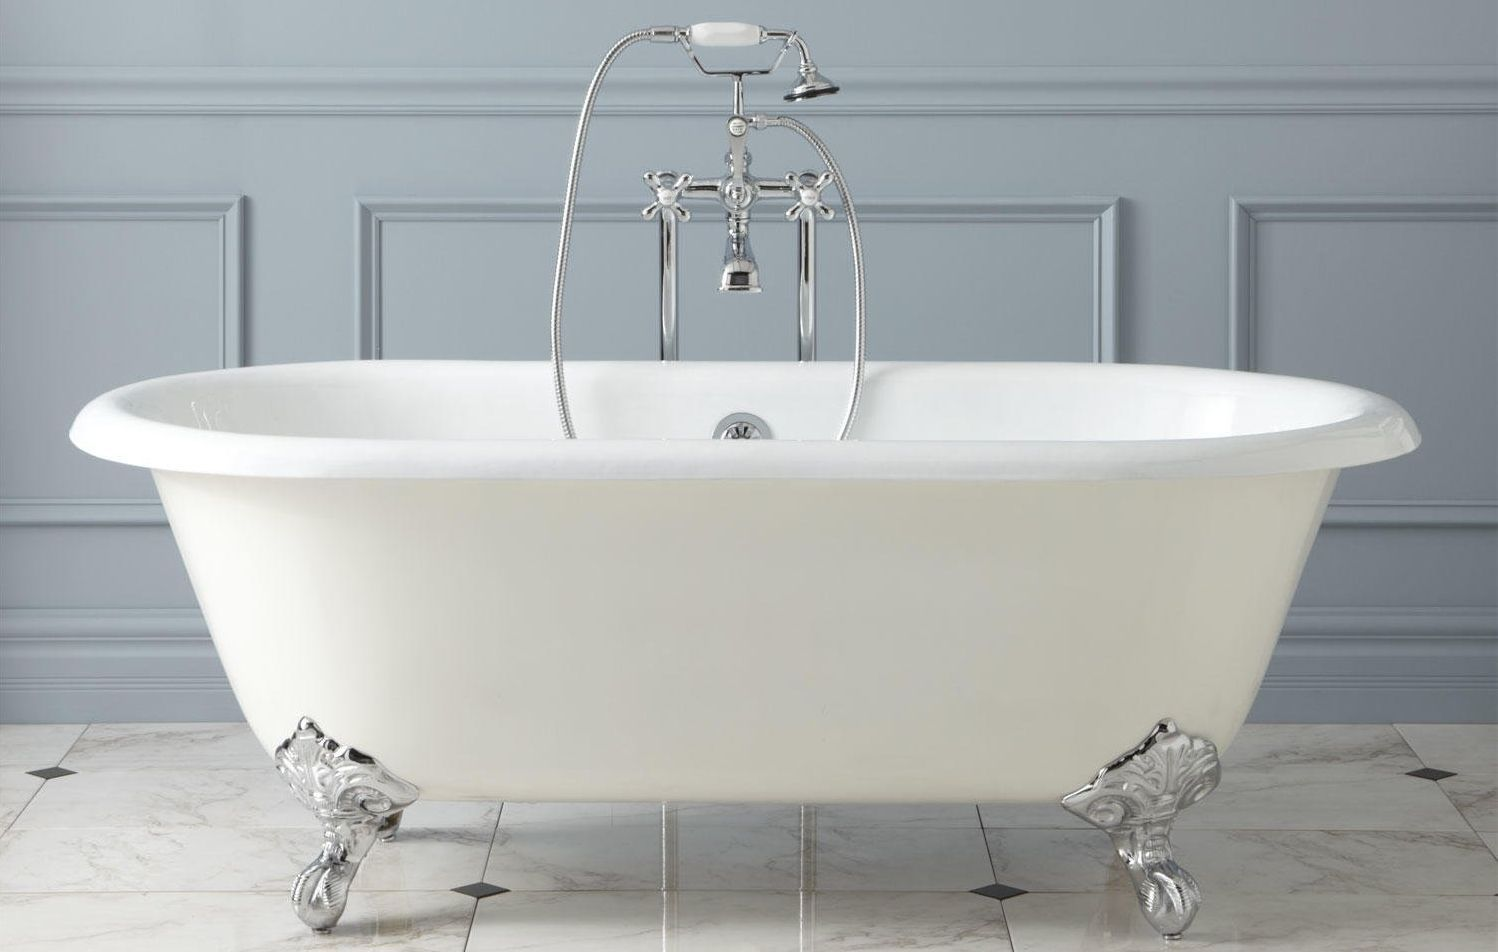 Basic Types Of Bathtubs 1822566 on living room interior design ideas